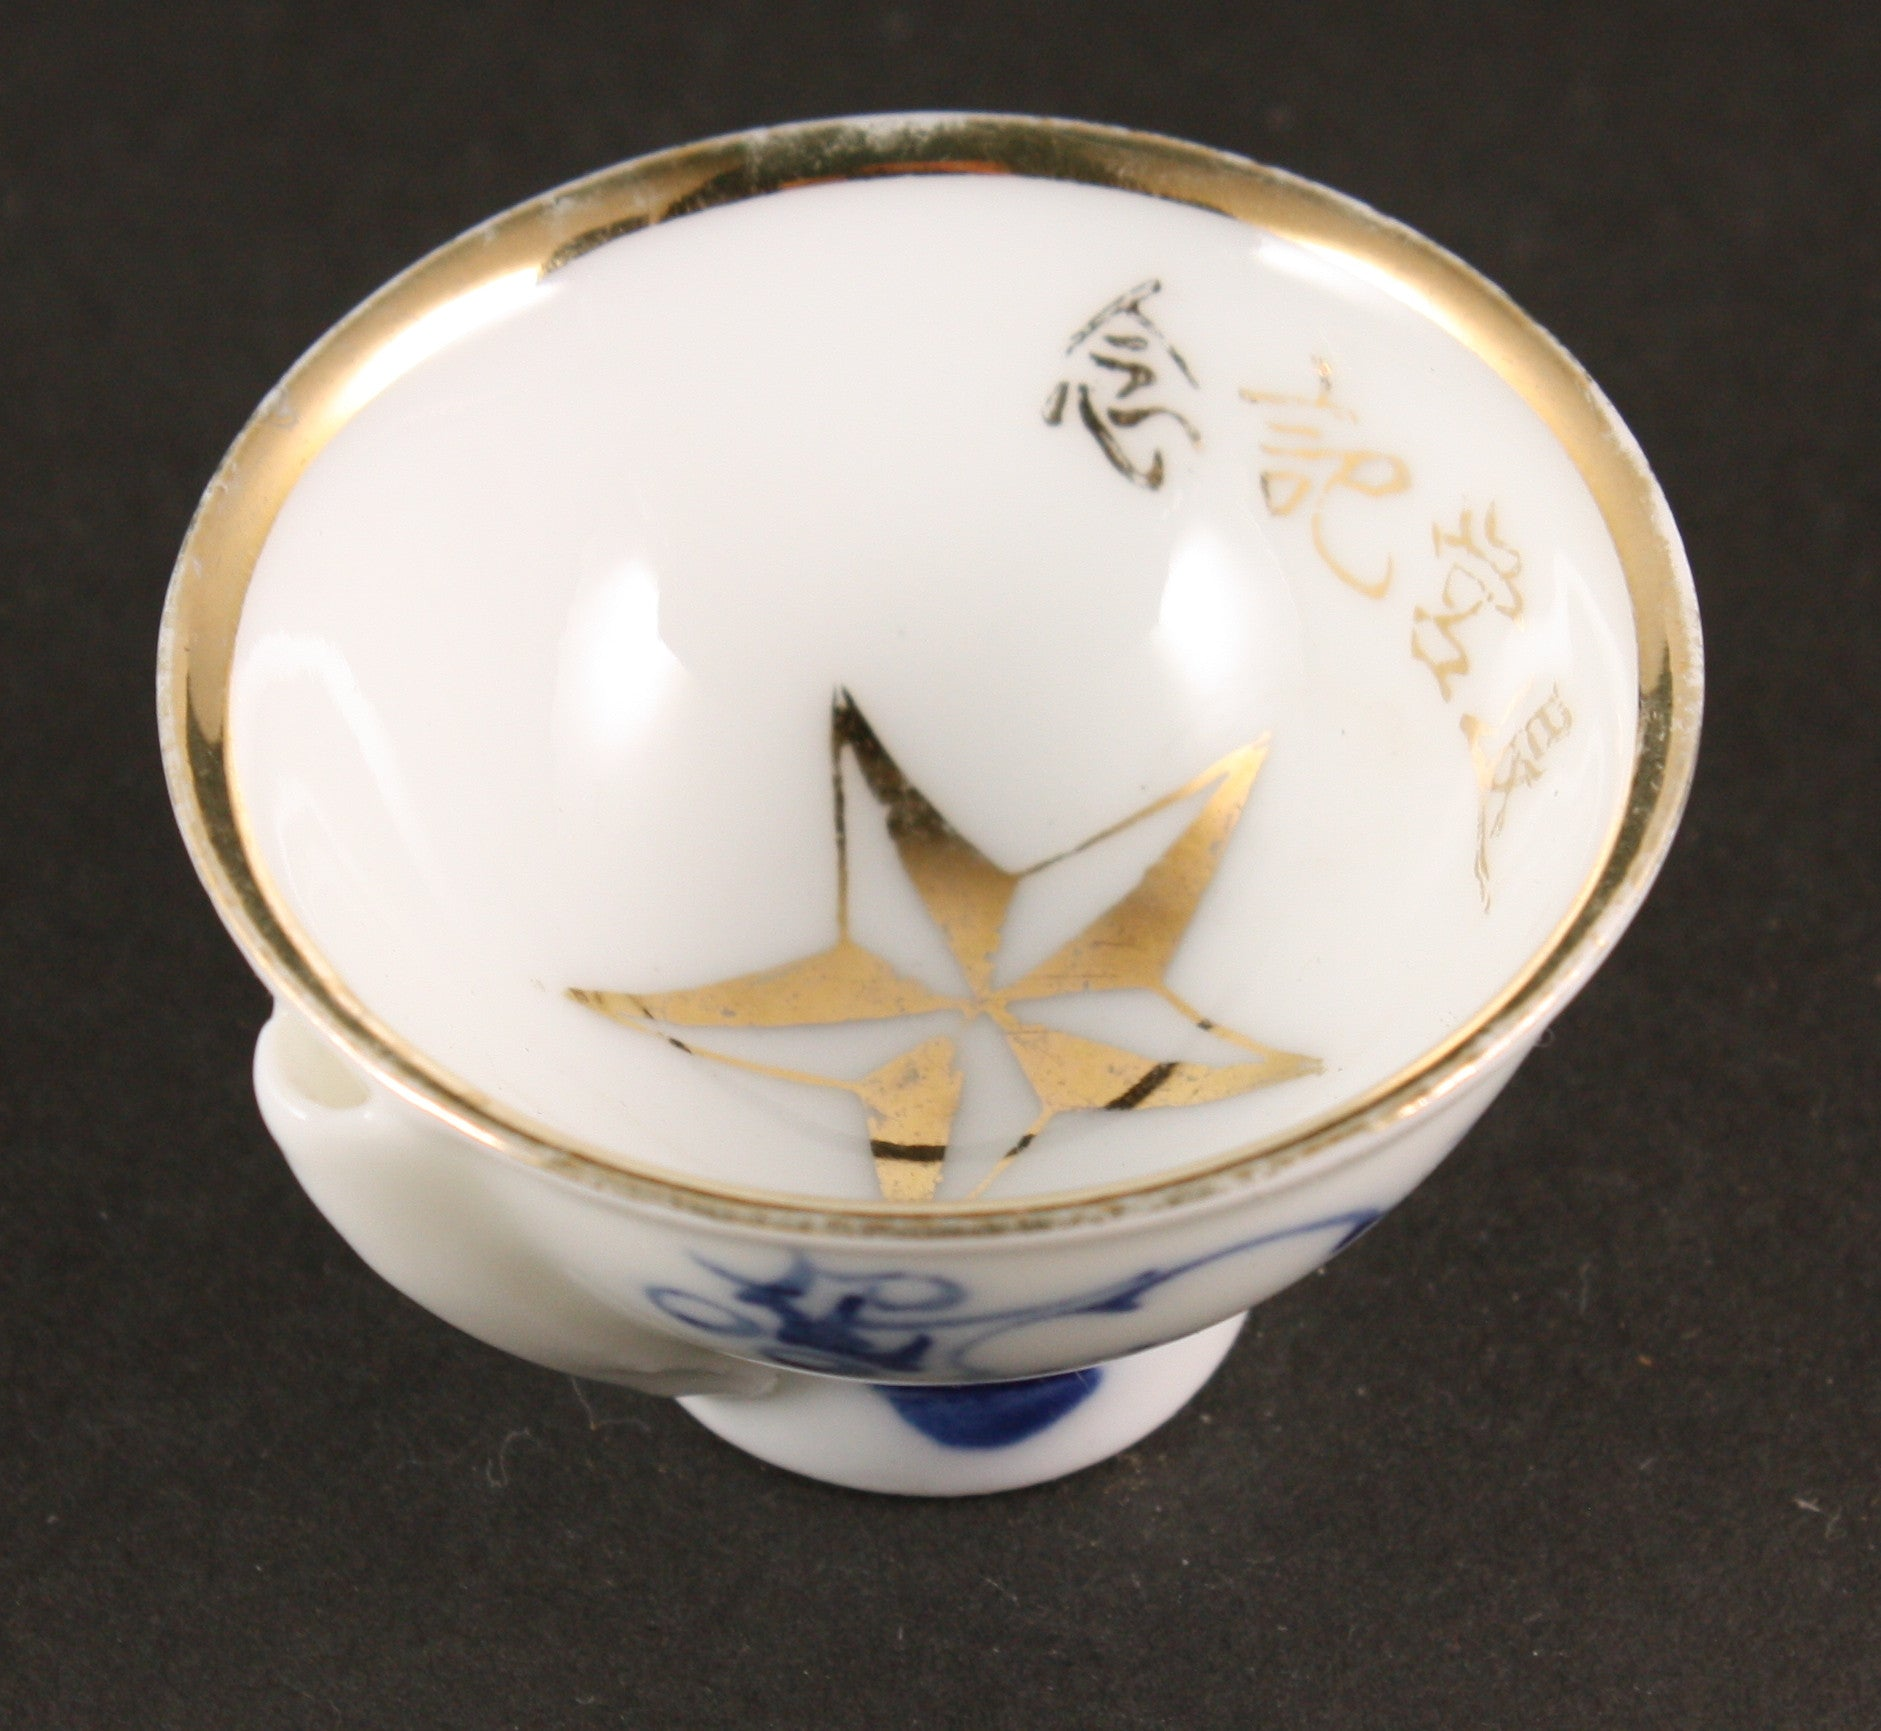 Very Rare Antique Japanese Whistling Military Sake Cup